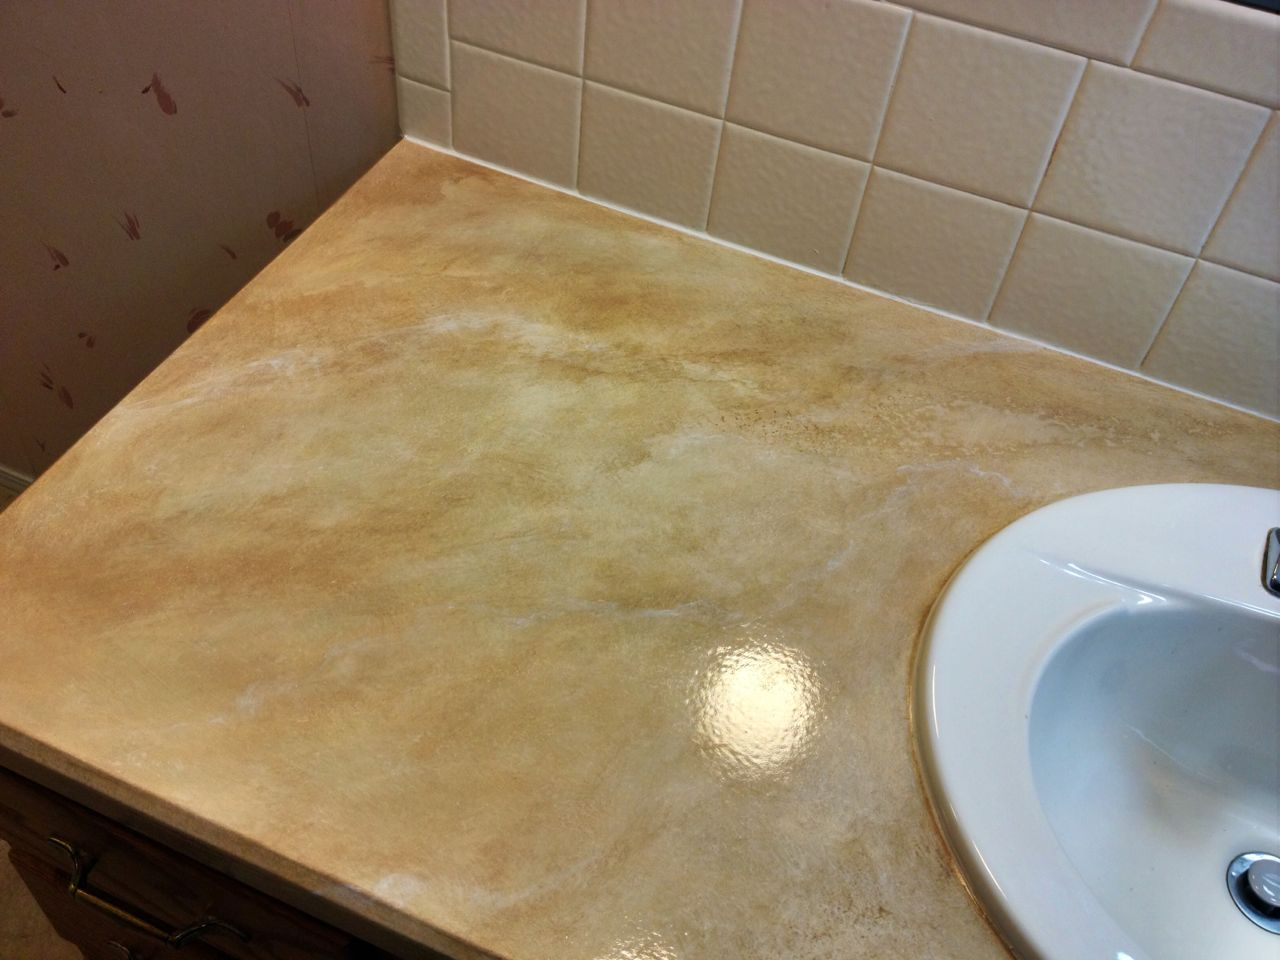 cultured countertops and for shower marble bathroom awesome surface ideas cleaning white colors solid com refinishing thedancingparent refinish sink bathrooms